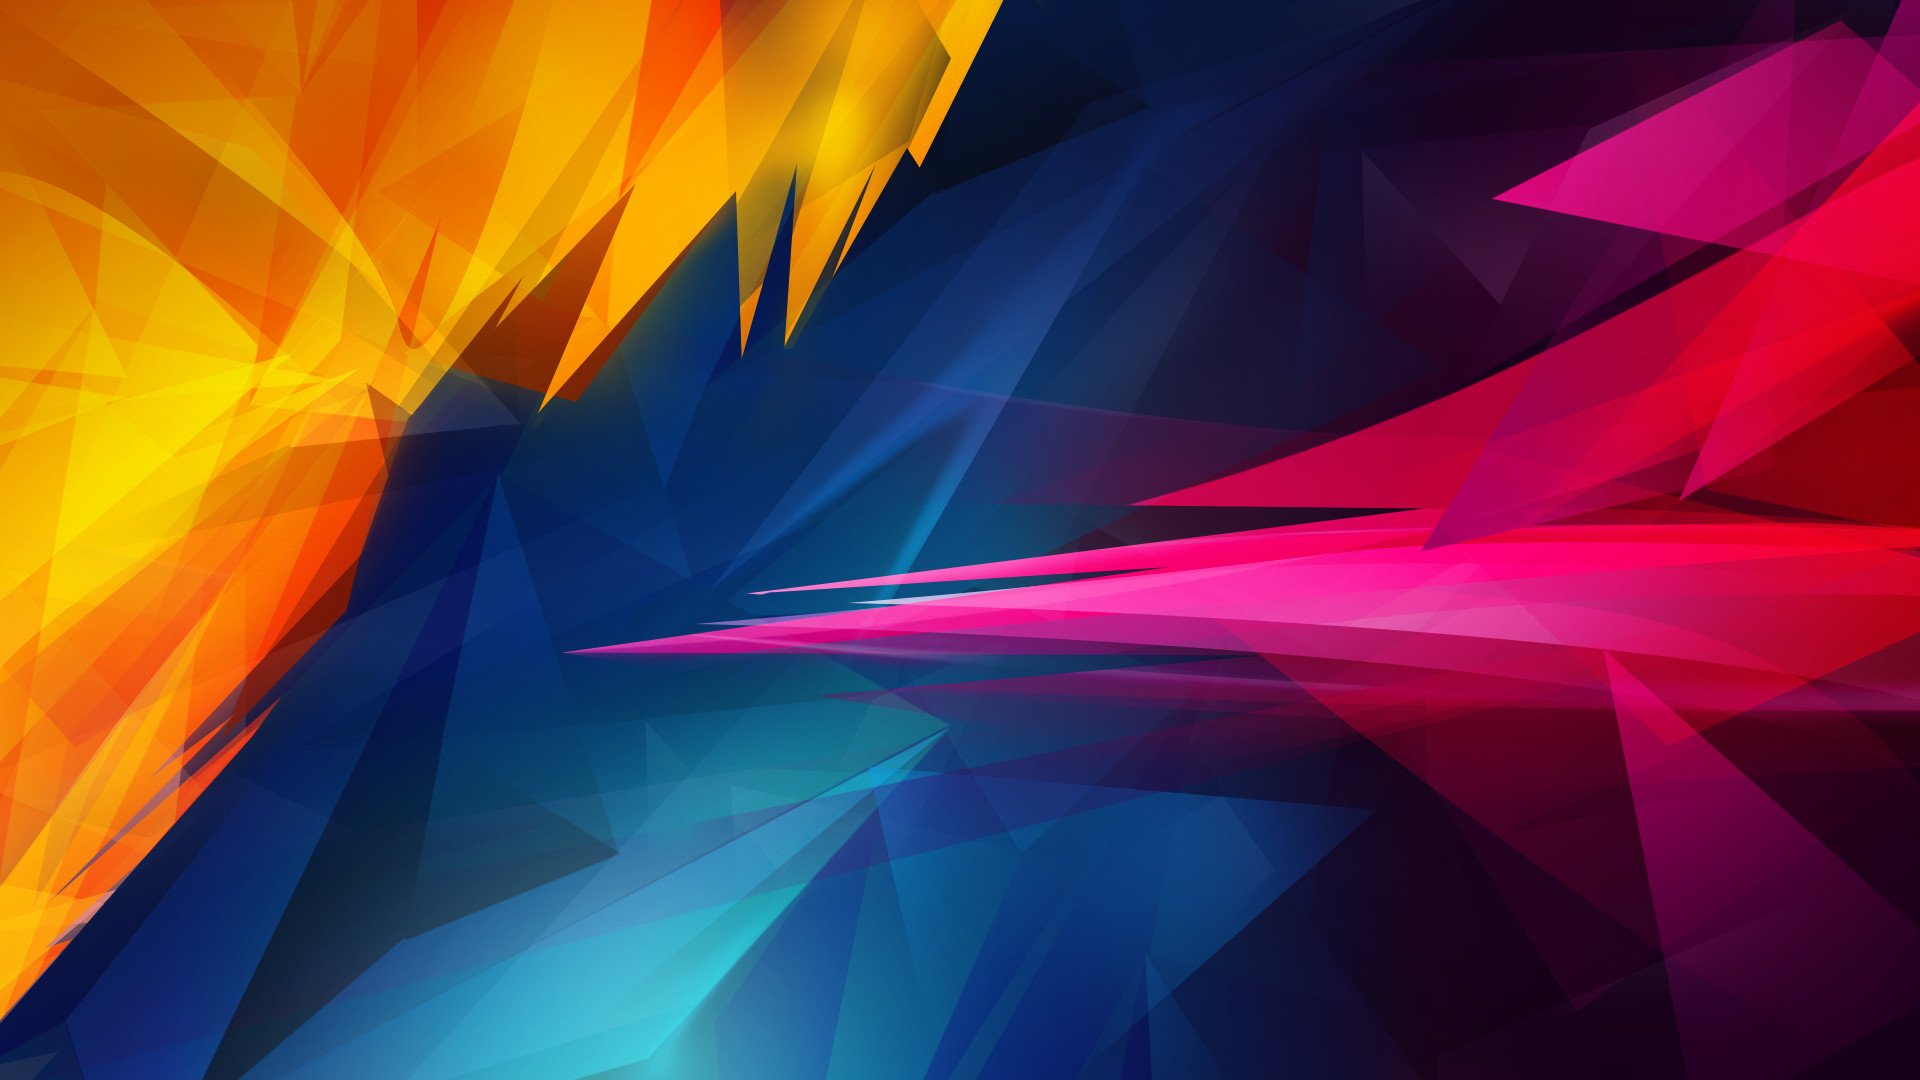 1920x1080 Abstract Wallpaper 47342